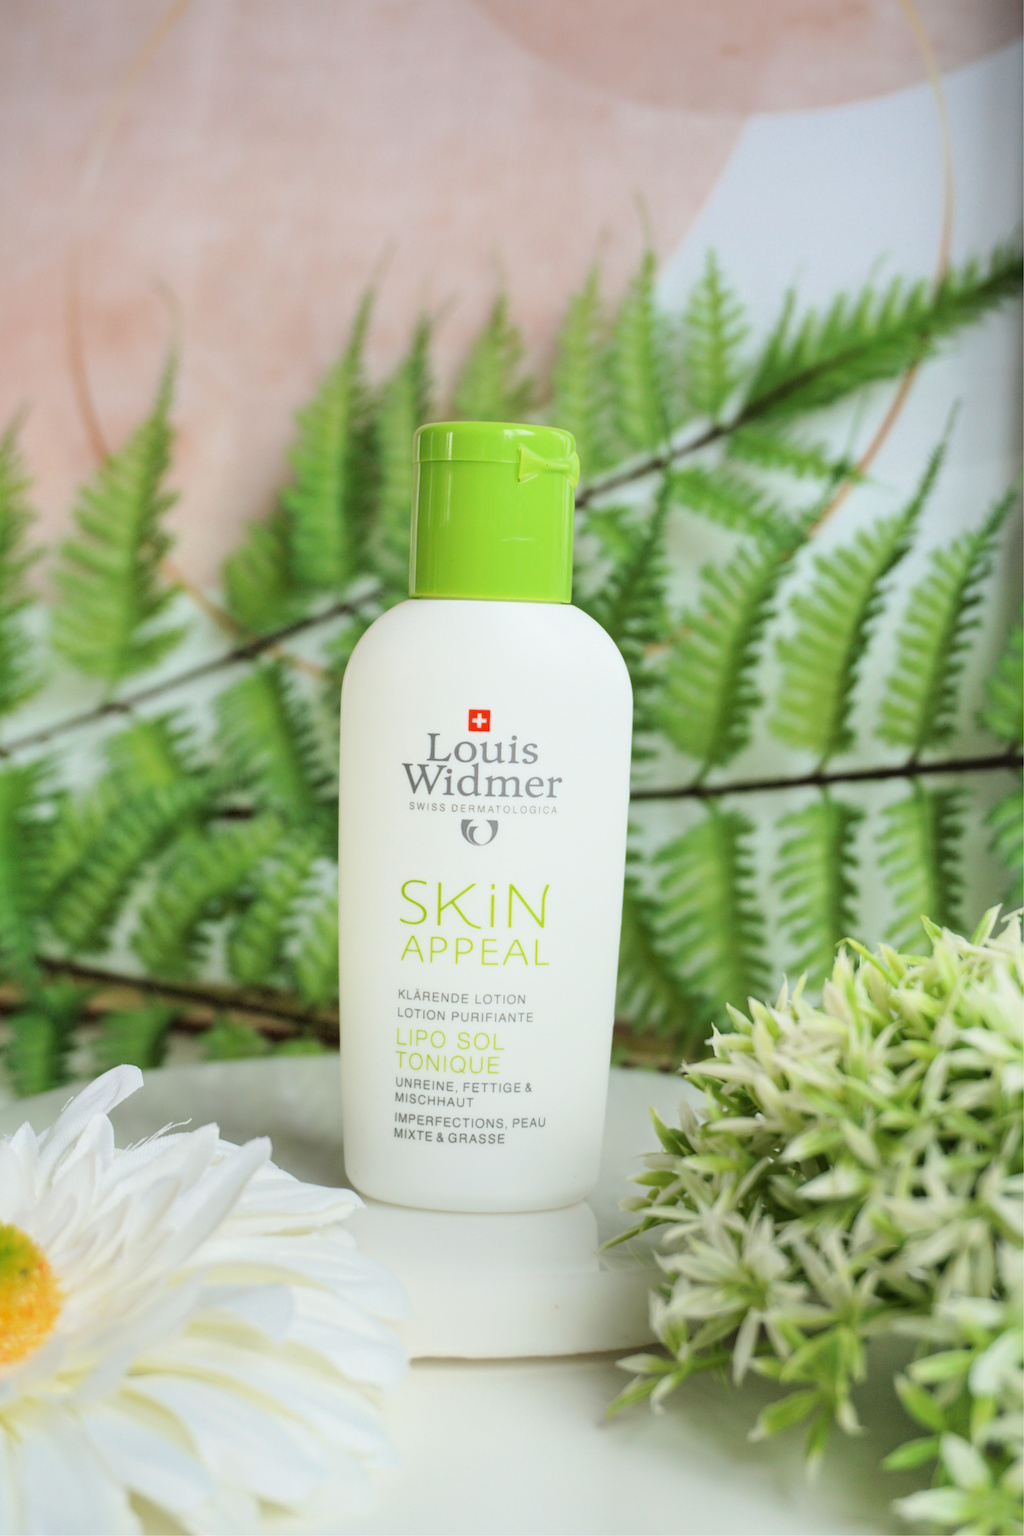 Louis Widmer Skin Appeal Tonic Review